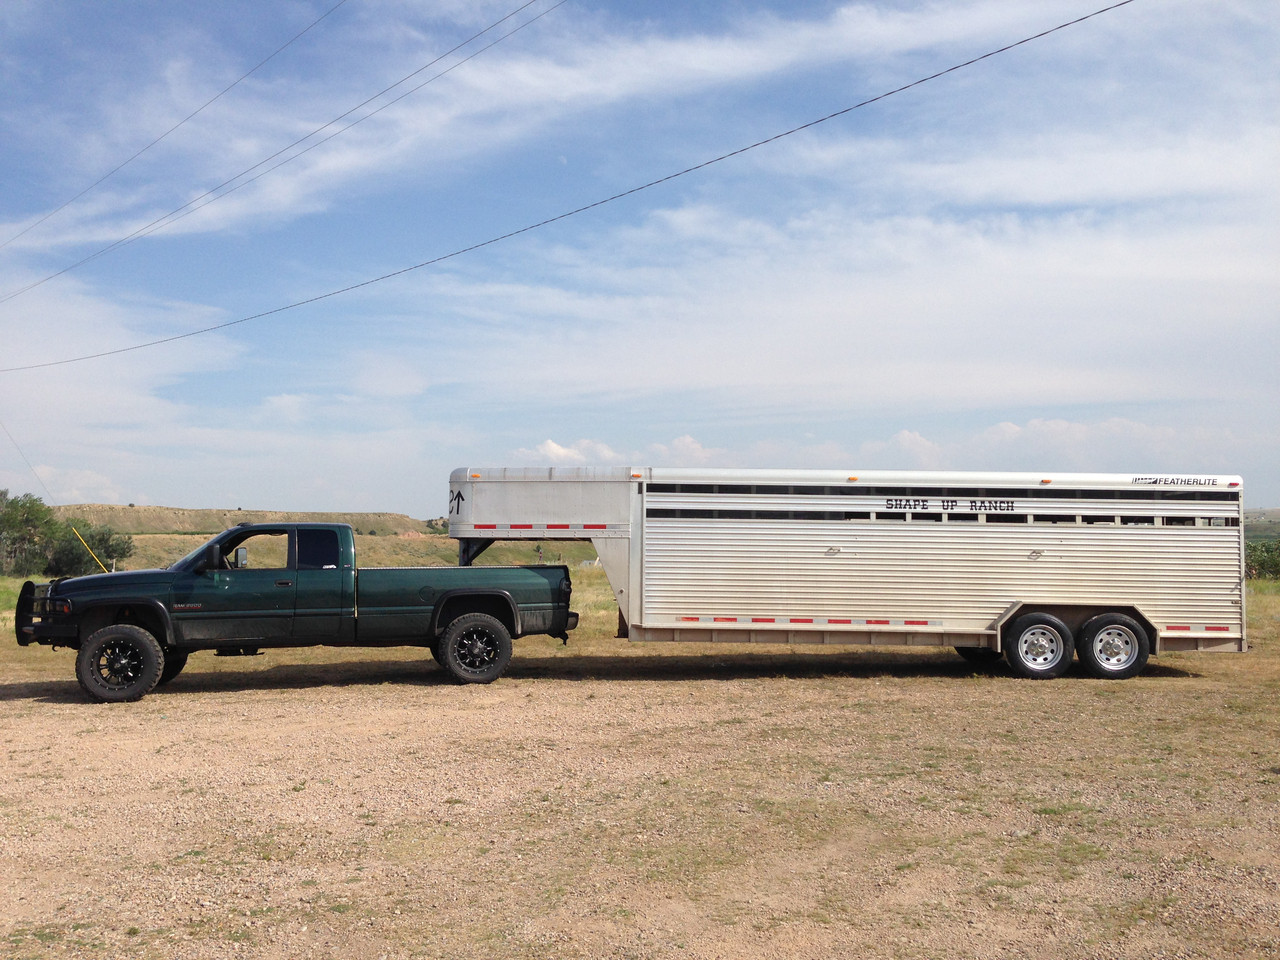 Dodge 2500 pulling Featherlite livestock trailer with Boar Evron rims.